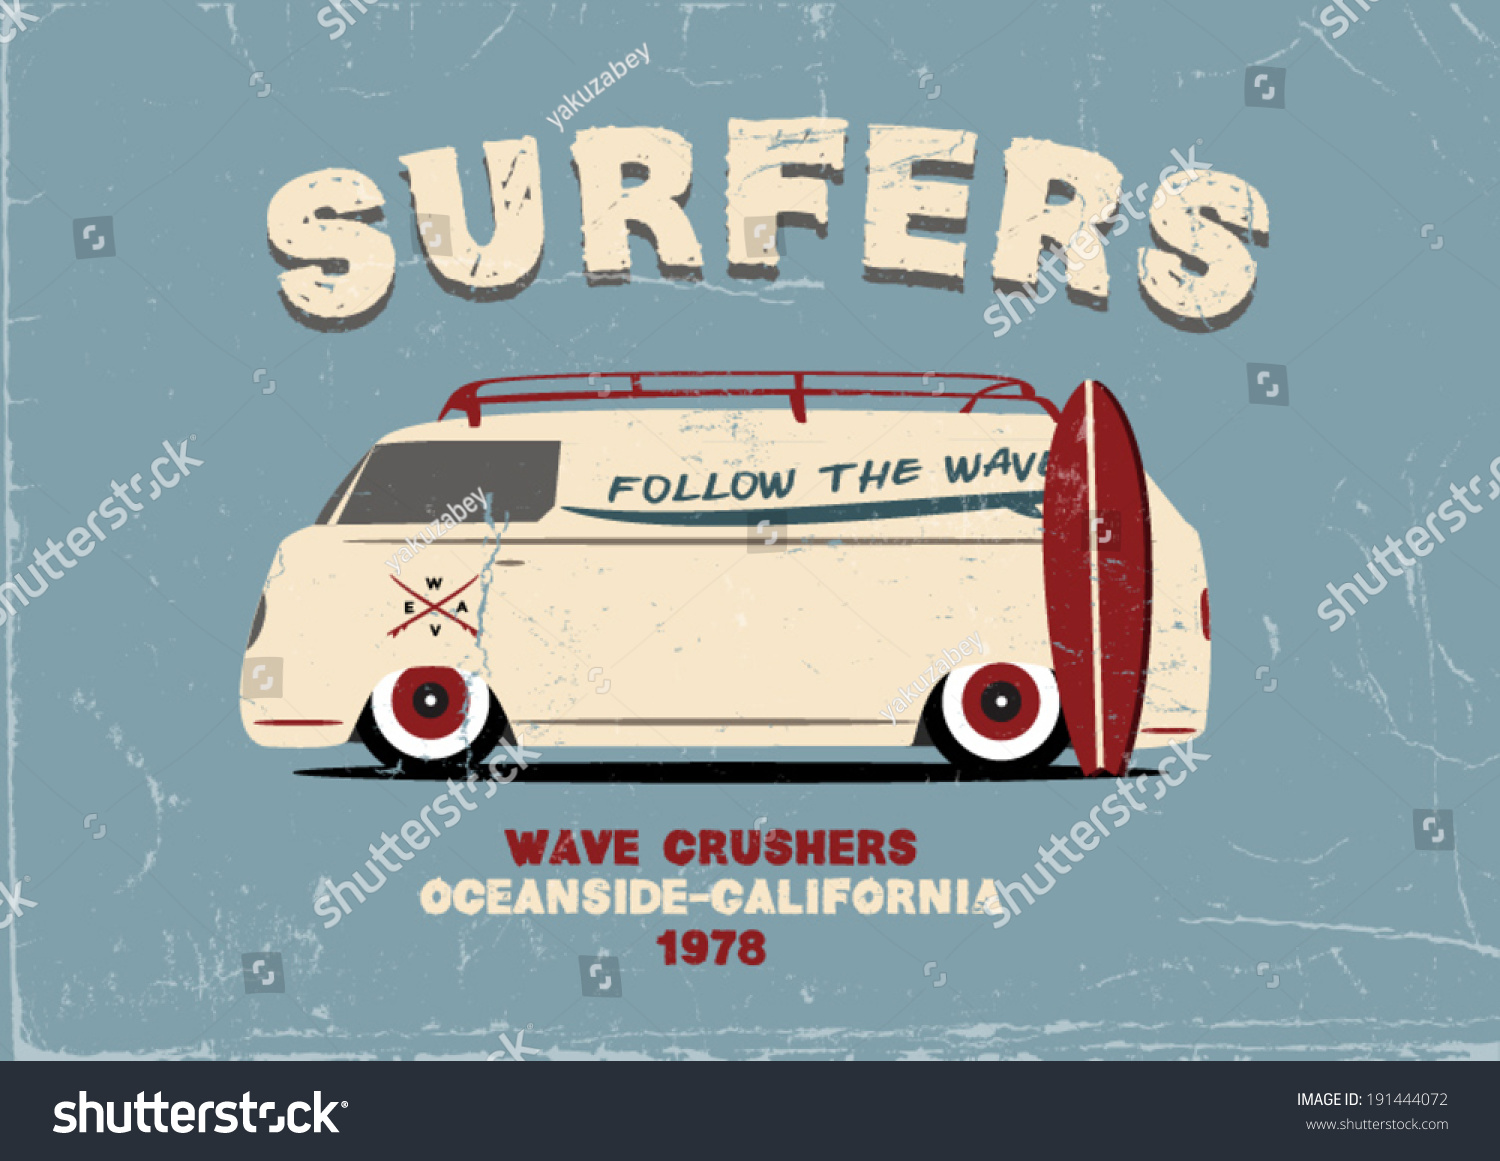 Poster design and printing - Surfer Van Poster Design Apparel Printing Vector Illustration T Shirt Design